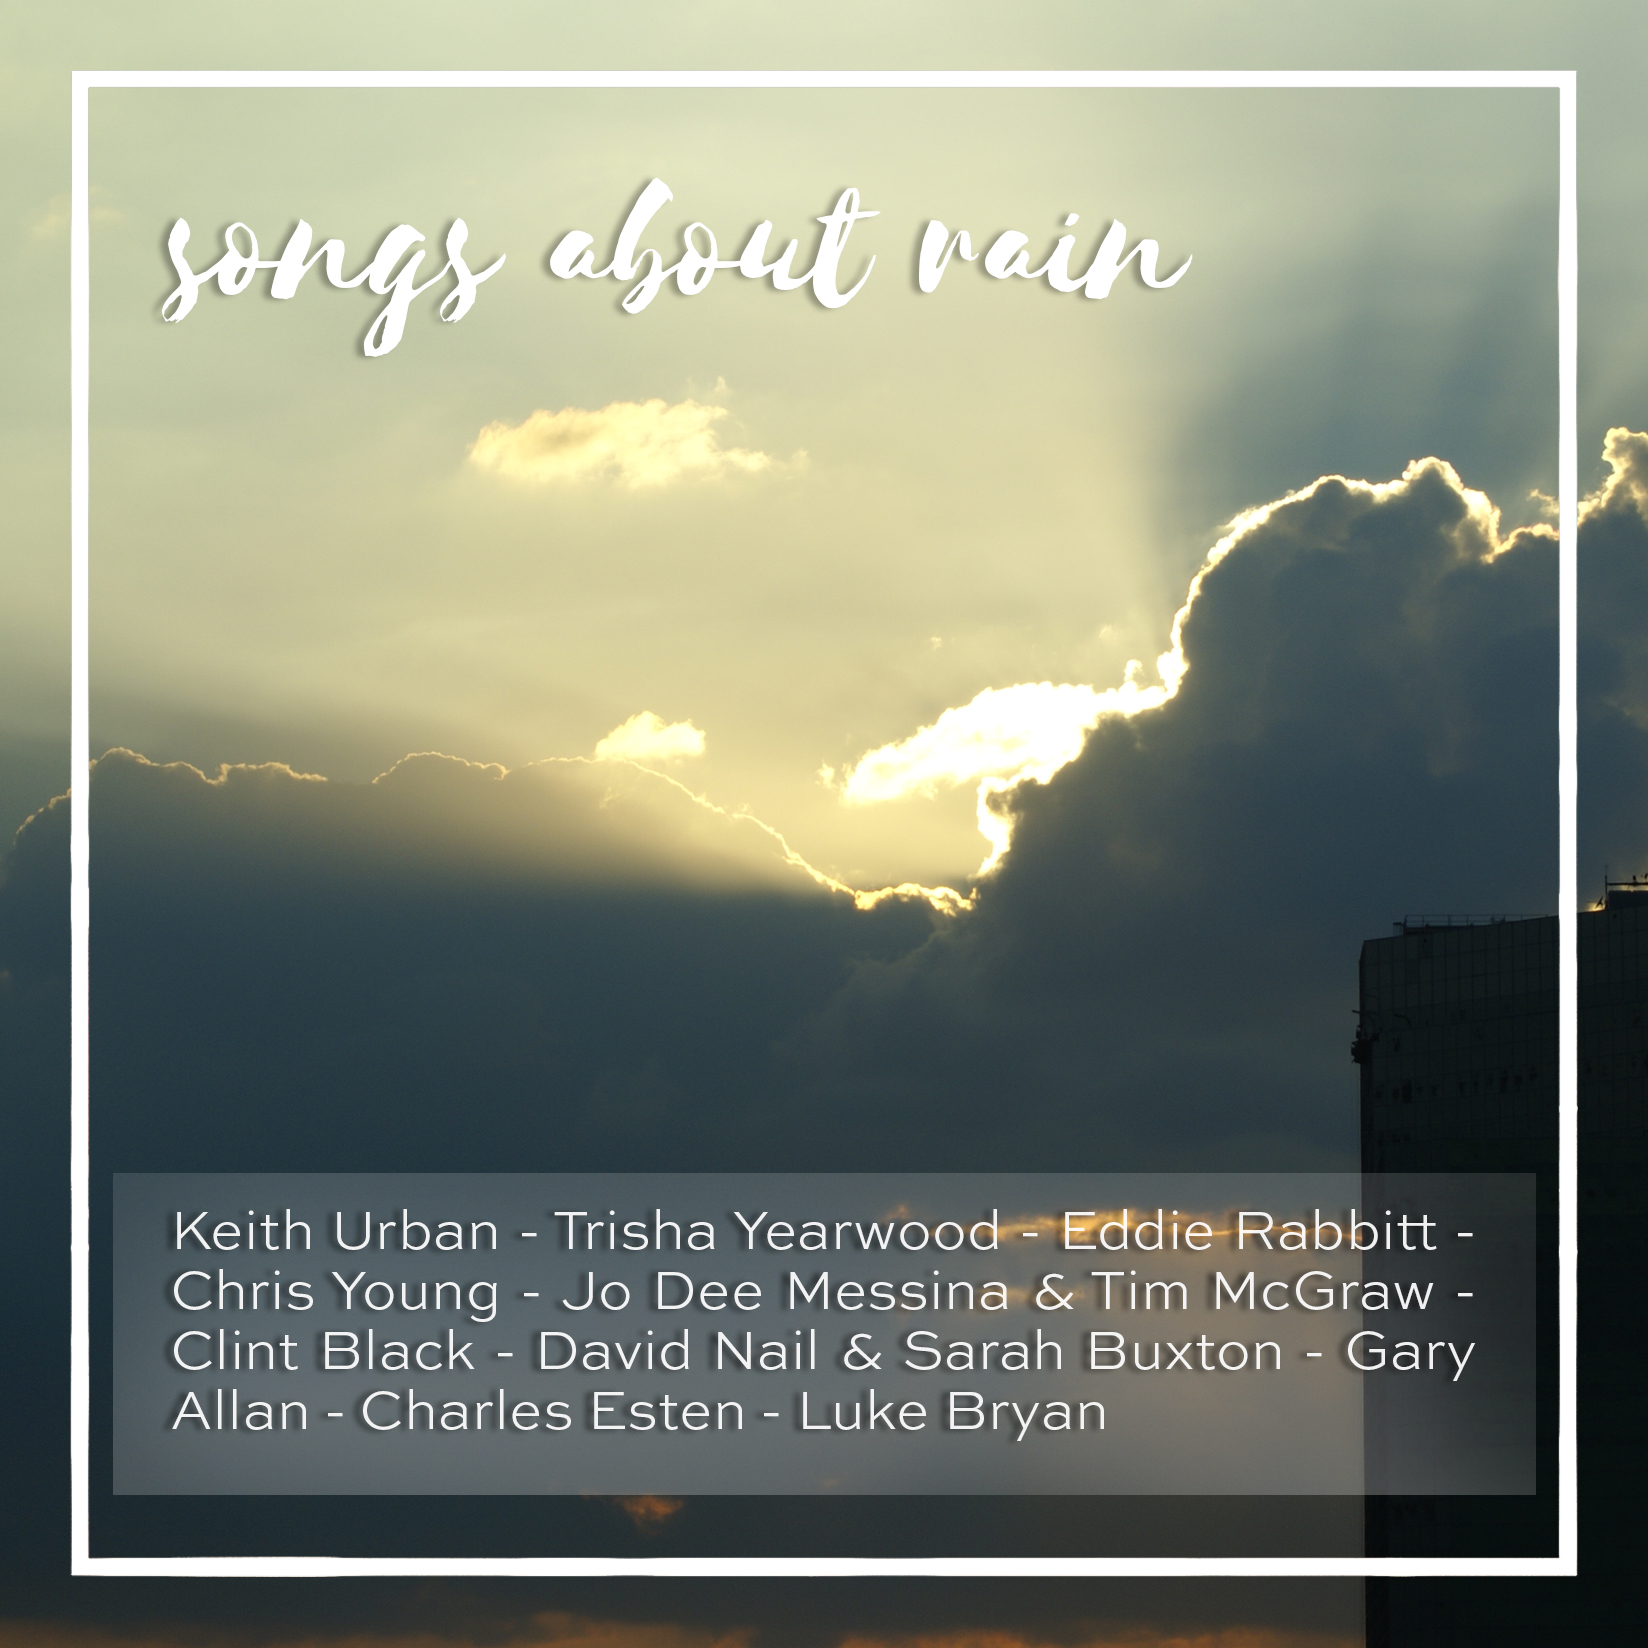 weekly playlist #19: songs about rain